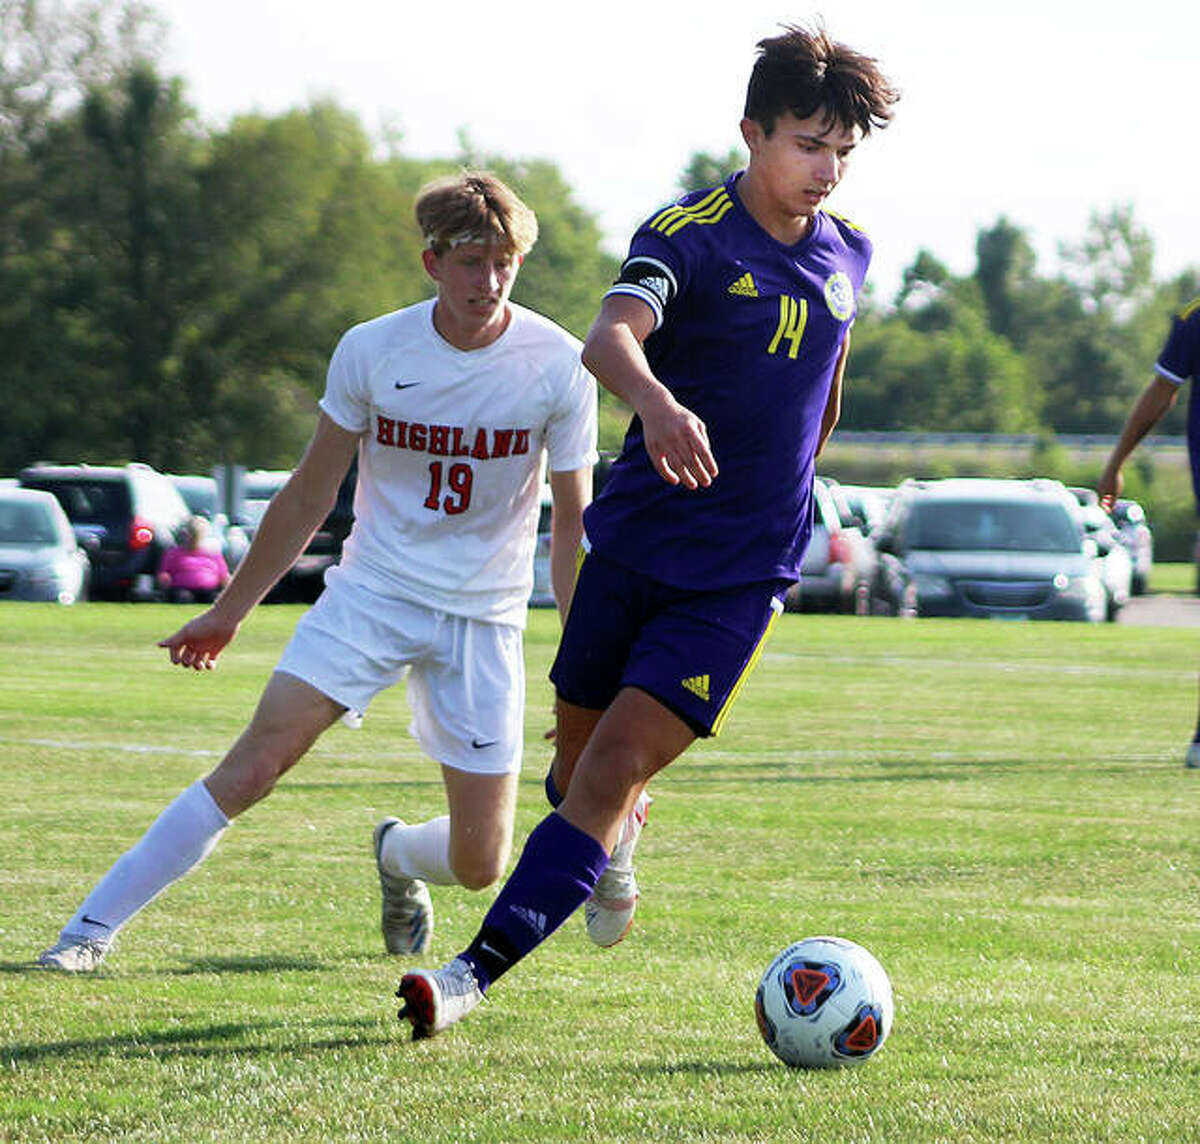 CM's Brayden Zyung (14) had a goal and pair of assists in Saturday's 7-0 non-conference victory over the Litchfield Purple Panthers at the Bethalto Sports Complex.